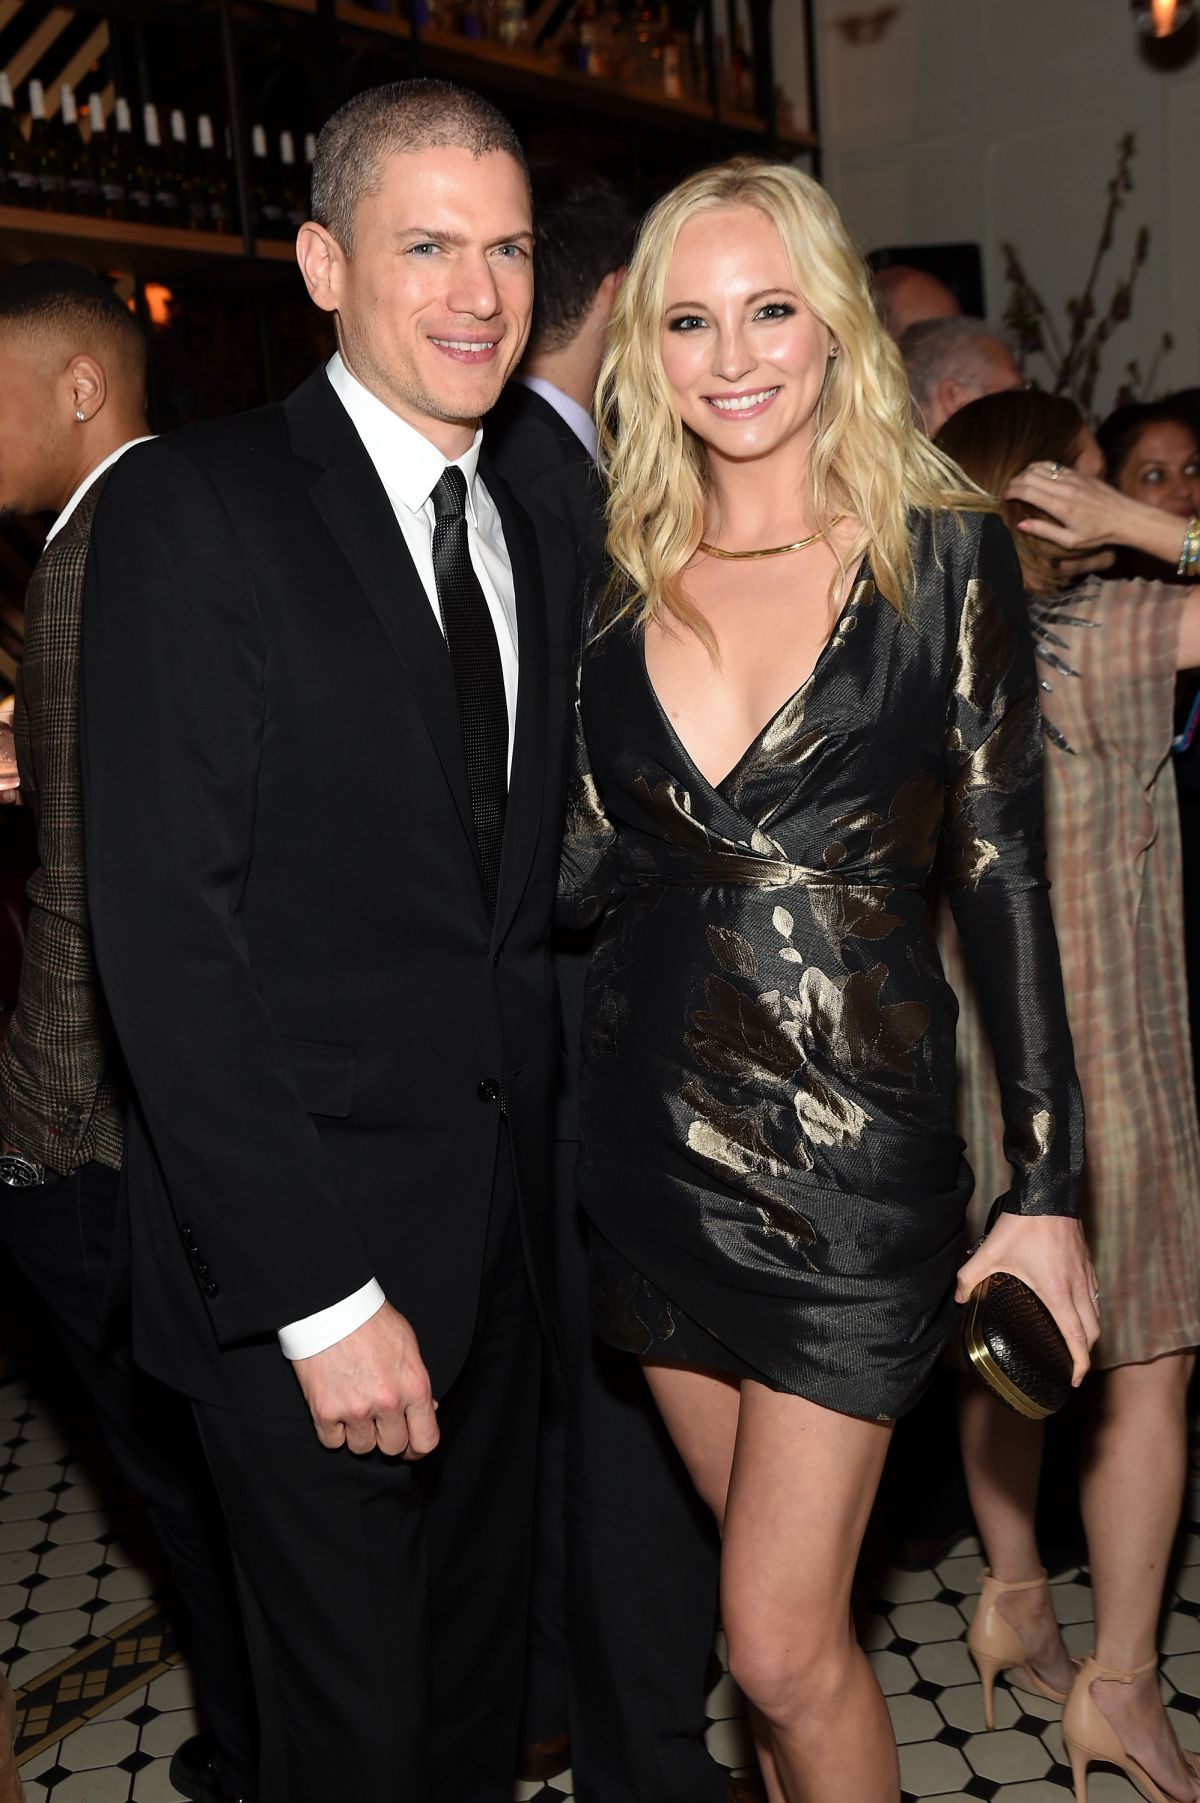 CANDICE ACCOLA at 2015 CW Upfront Party in New York